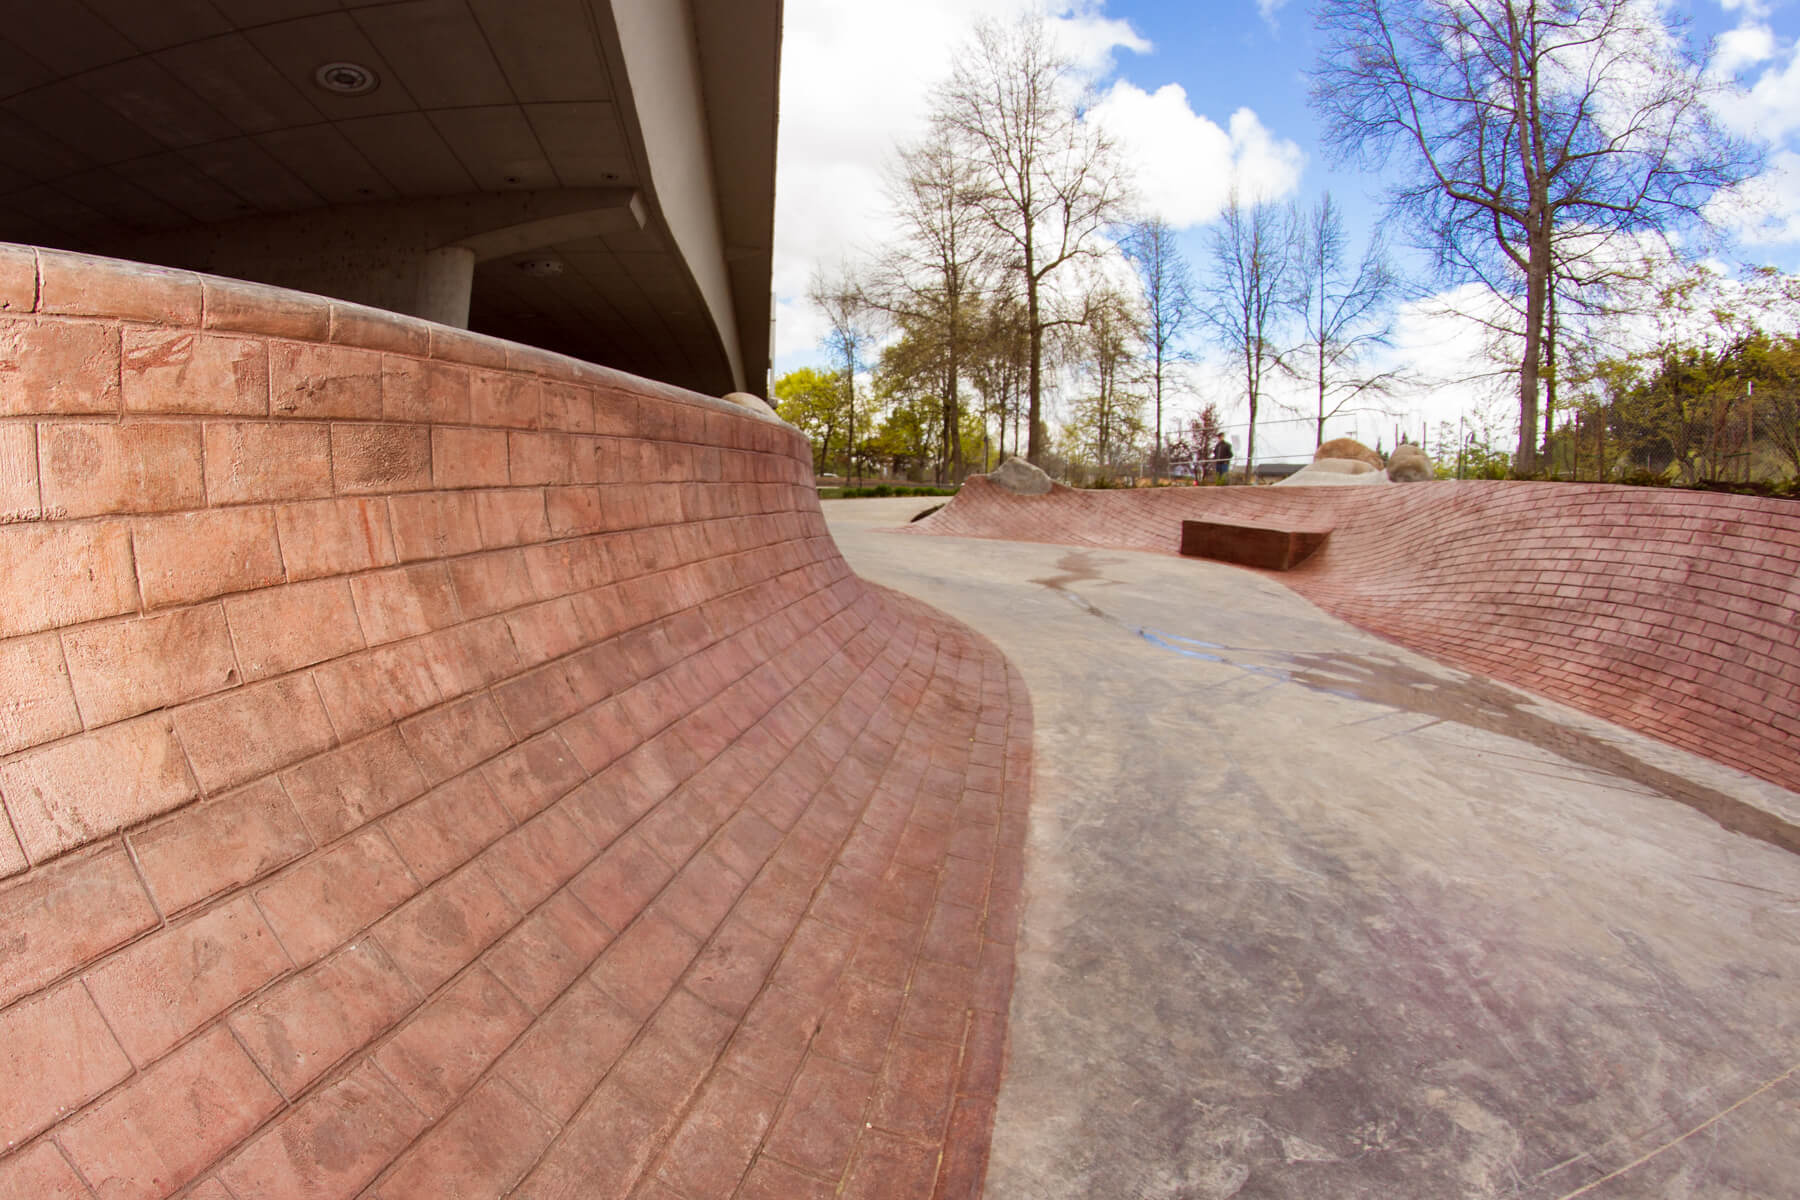 washington jefferson skatepark, eugene, oregon